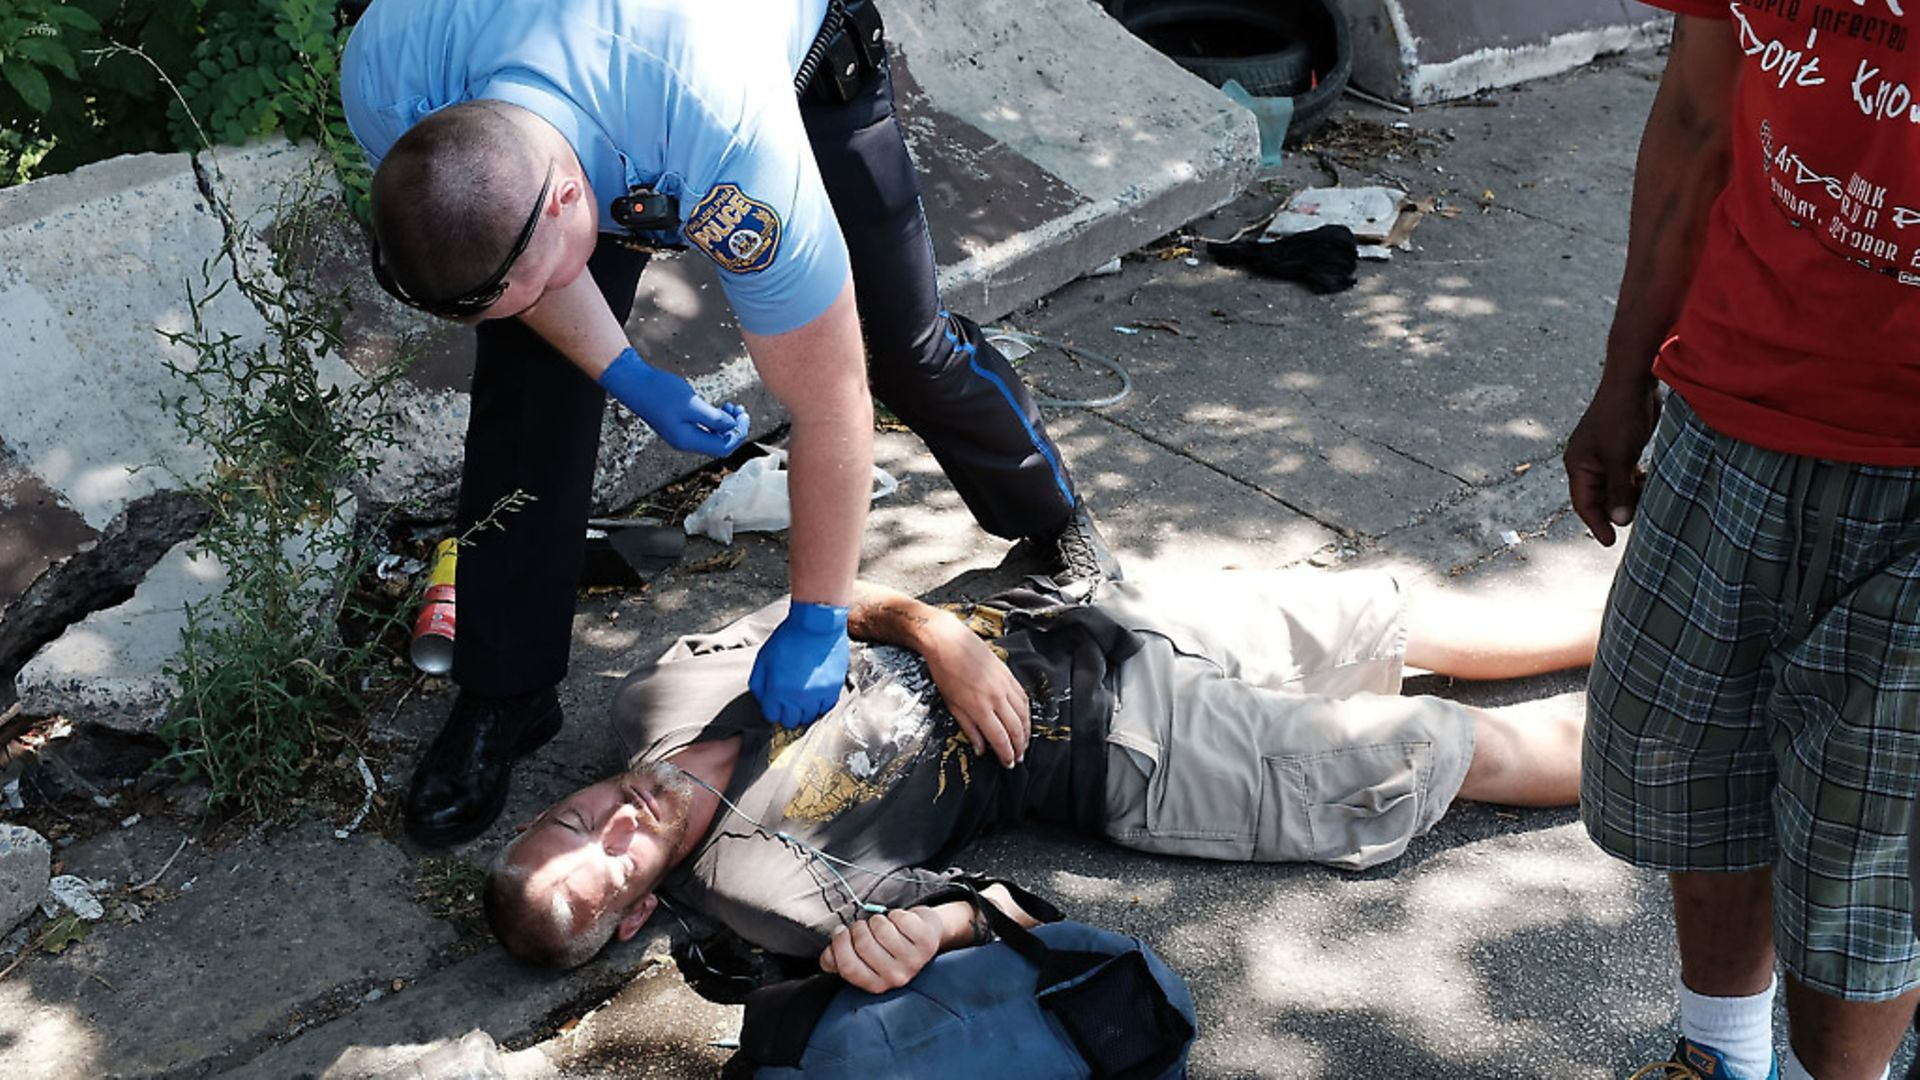 A police officer in Philadelphia tries to revive a man who has overdosed. Photo: Spencer Platt/Getty Images - Credit: Getty Images